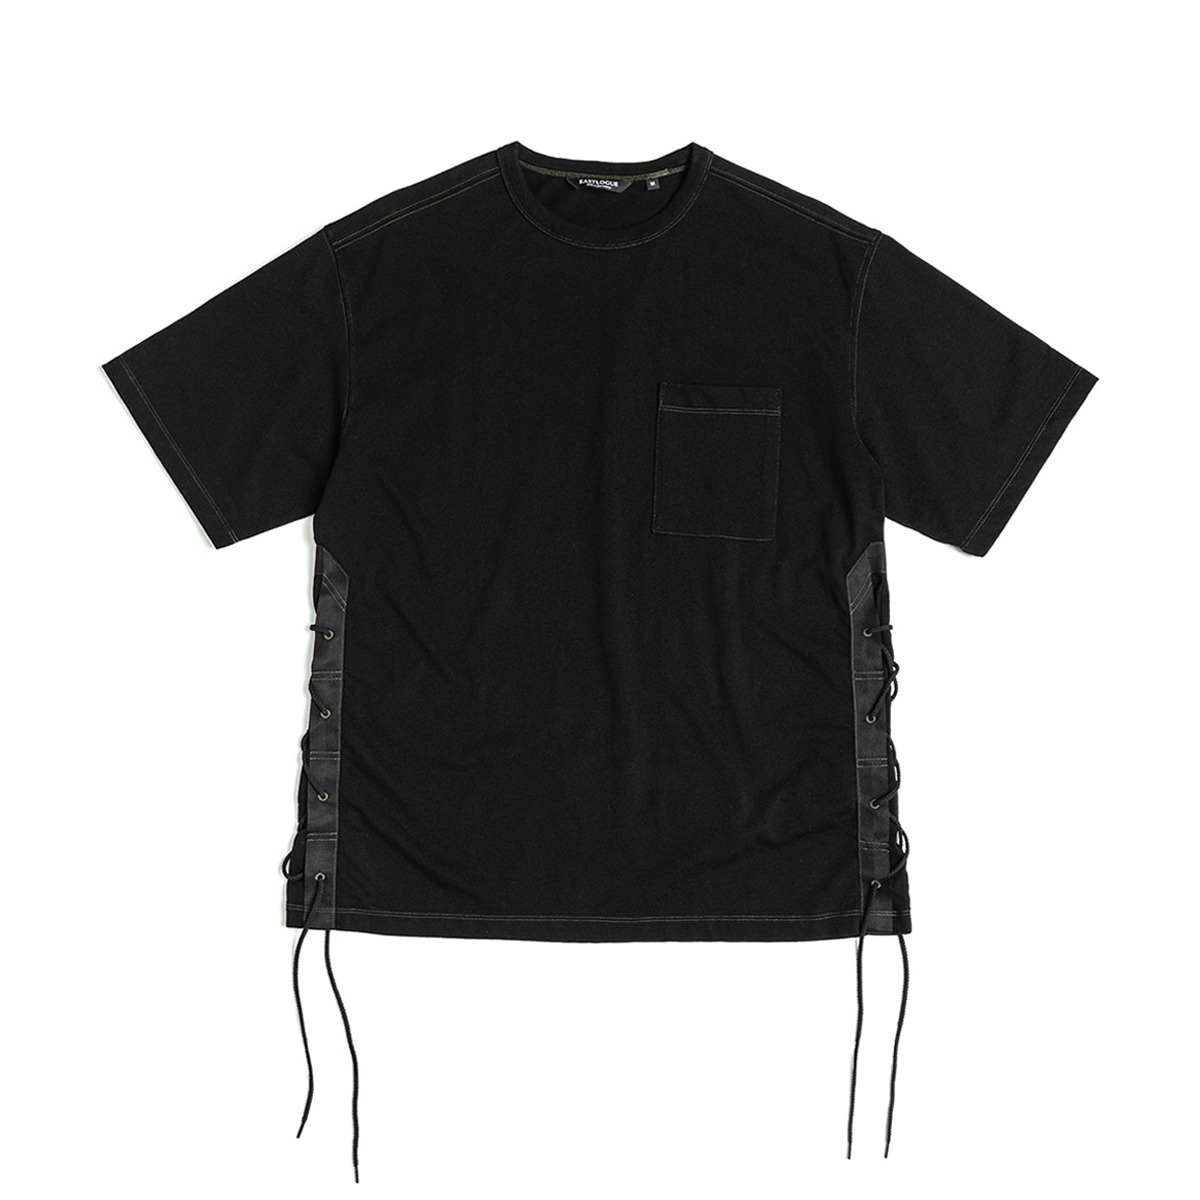 [EASTLOGUE] FLAK T-SHIRT 'BLACK'